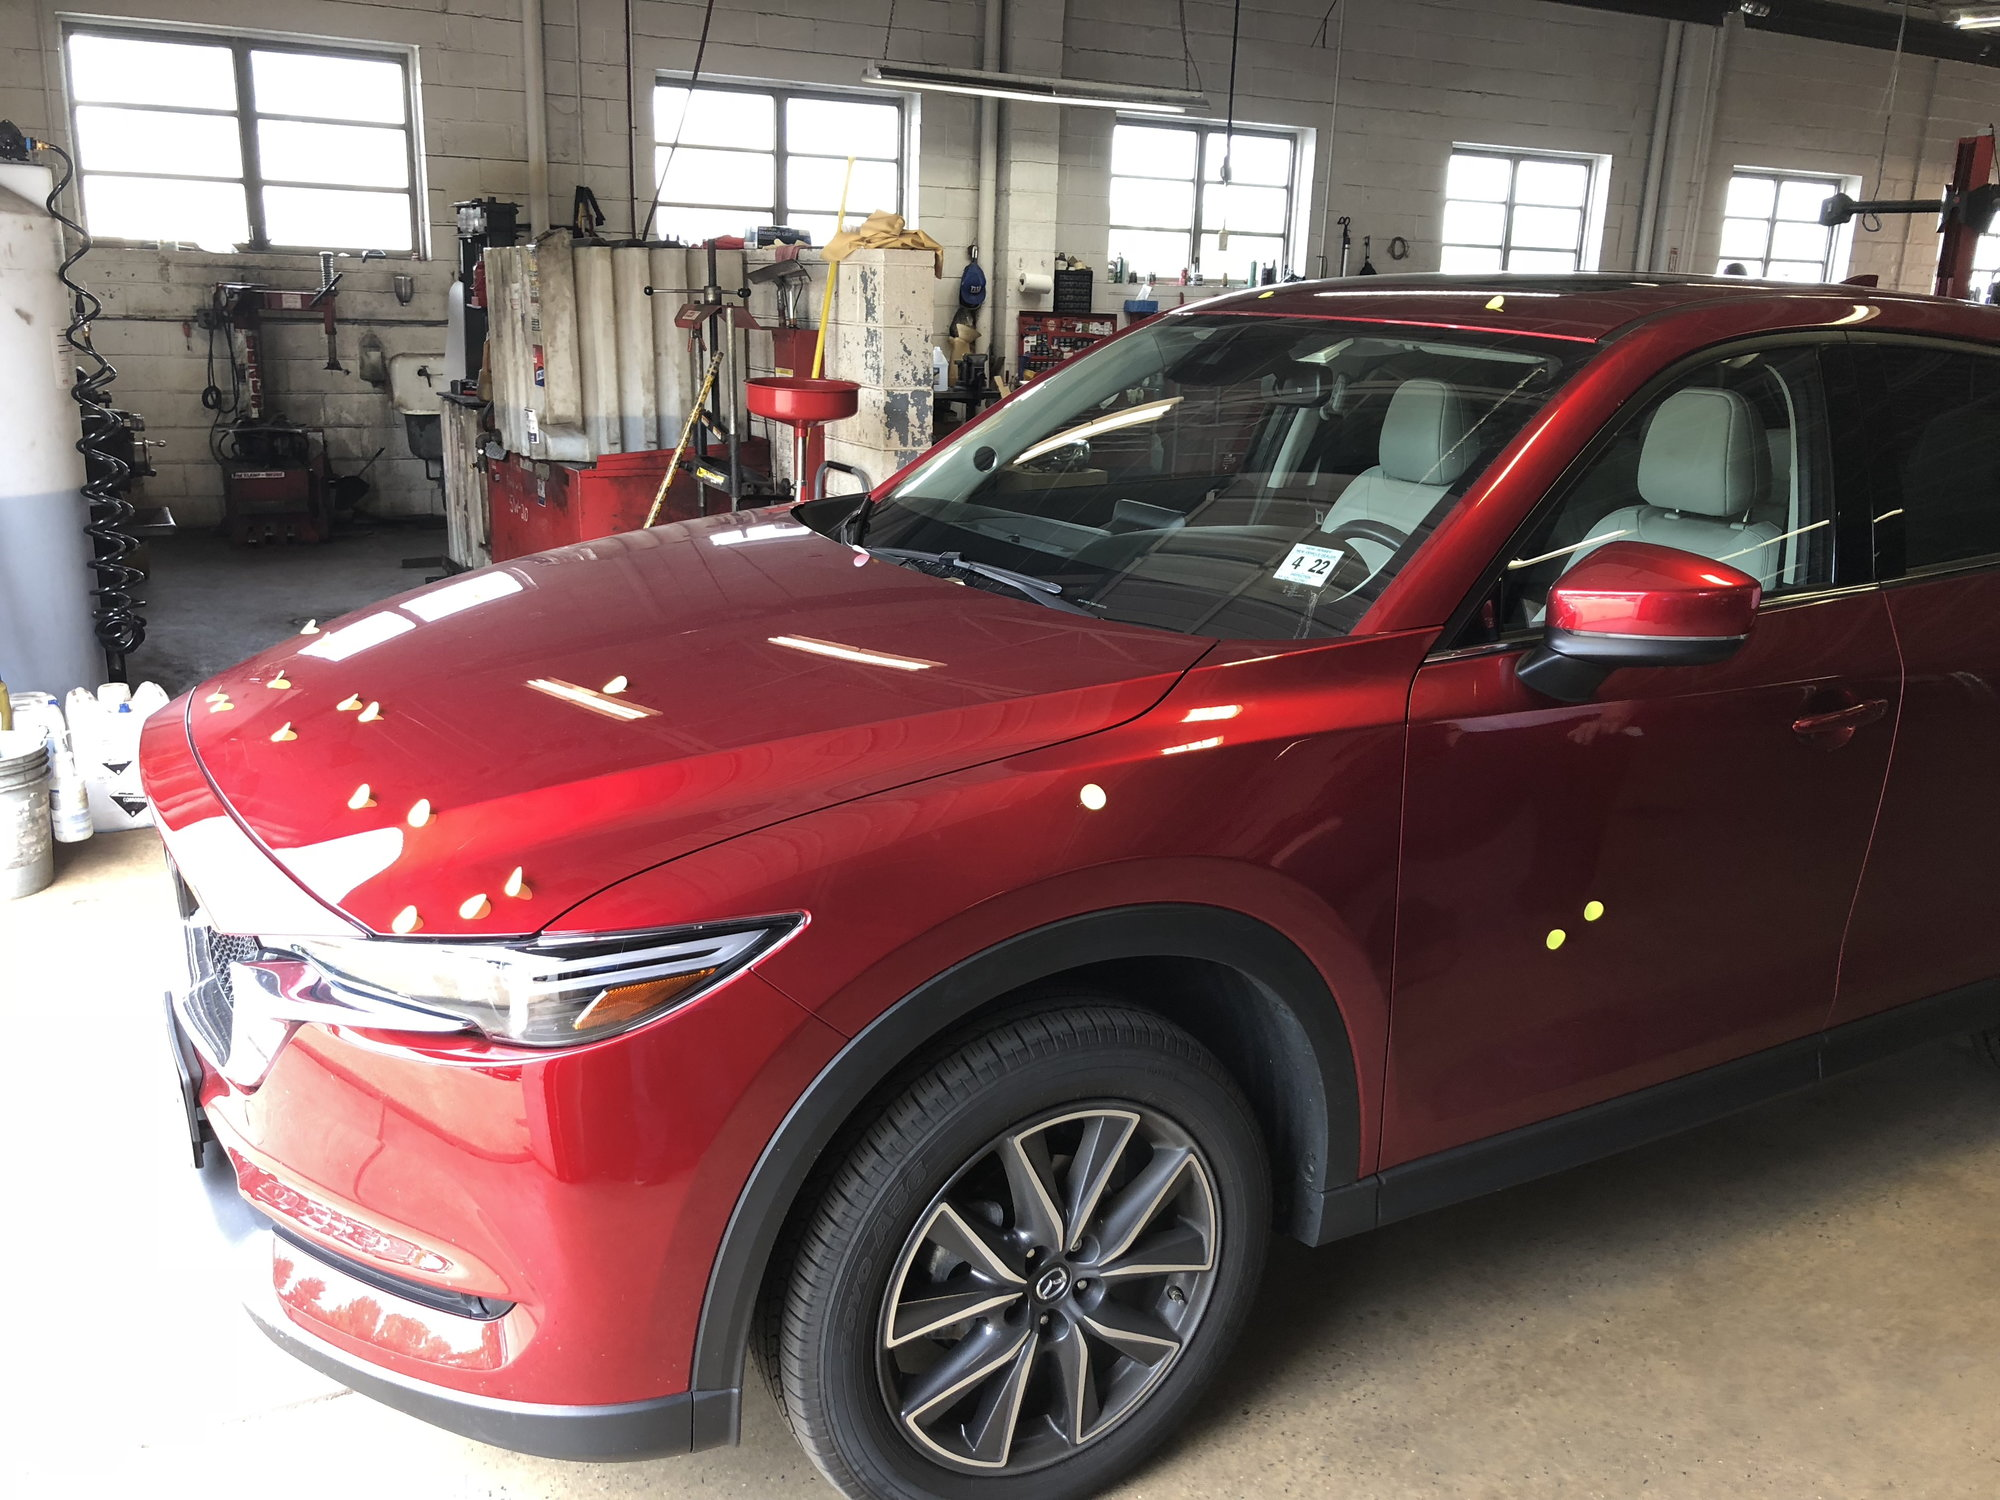 Mazda Dealership Near Me >> Soul Red Crystal Metallic - Page 7 - Mazda Forum - Mazda ...